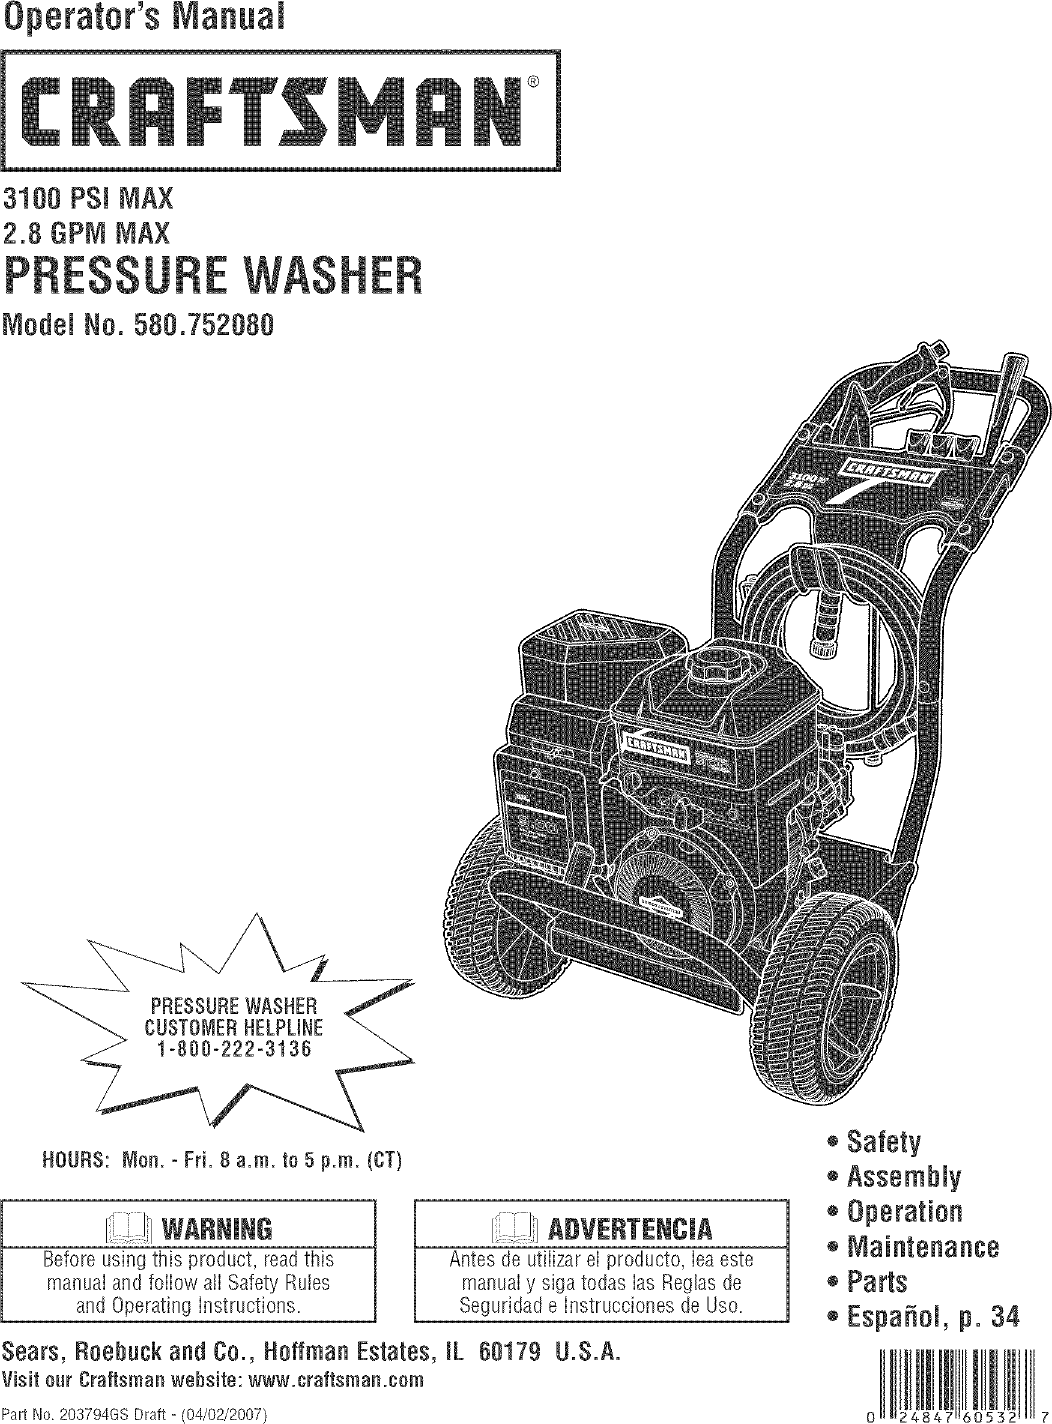 Craftsman 580752080 User Manual PRESSURE WASHER Manuals